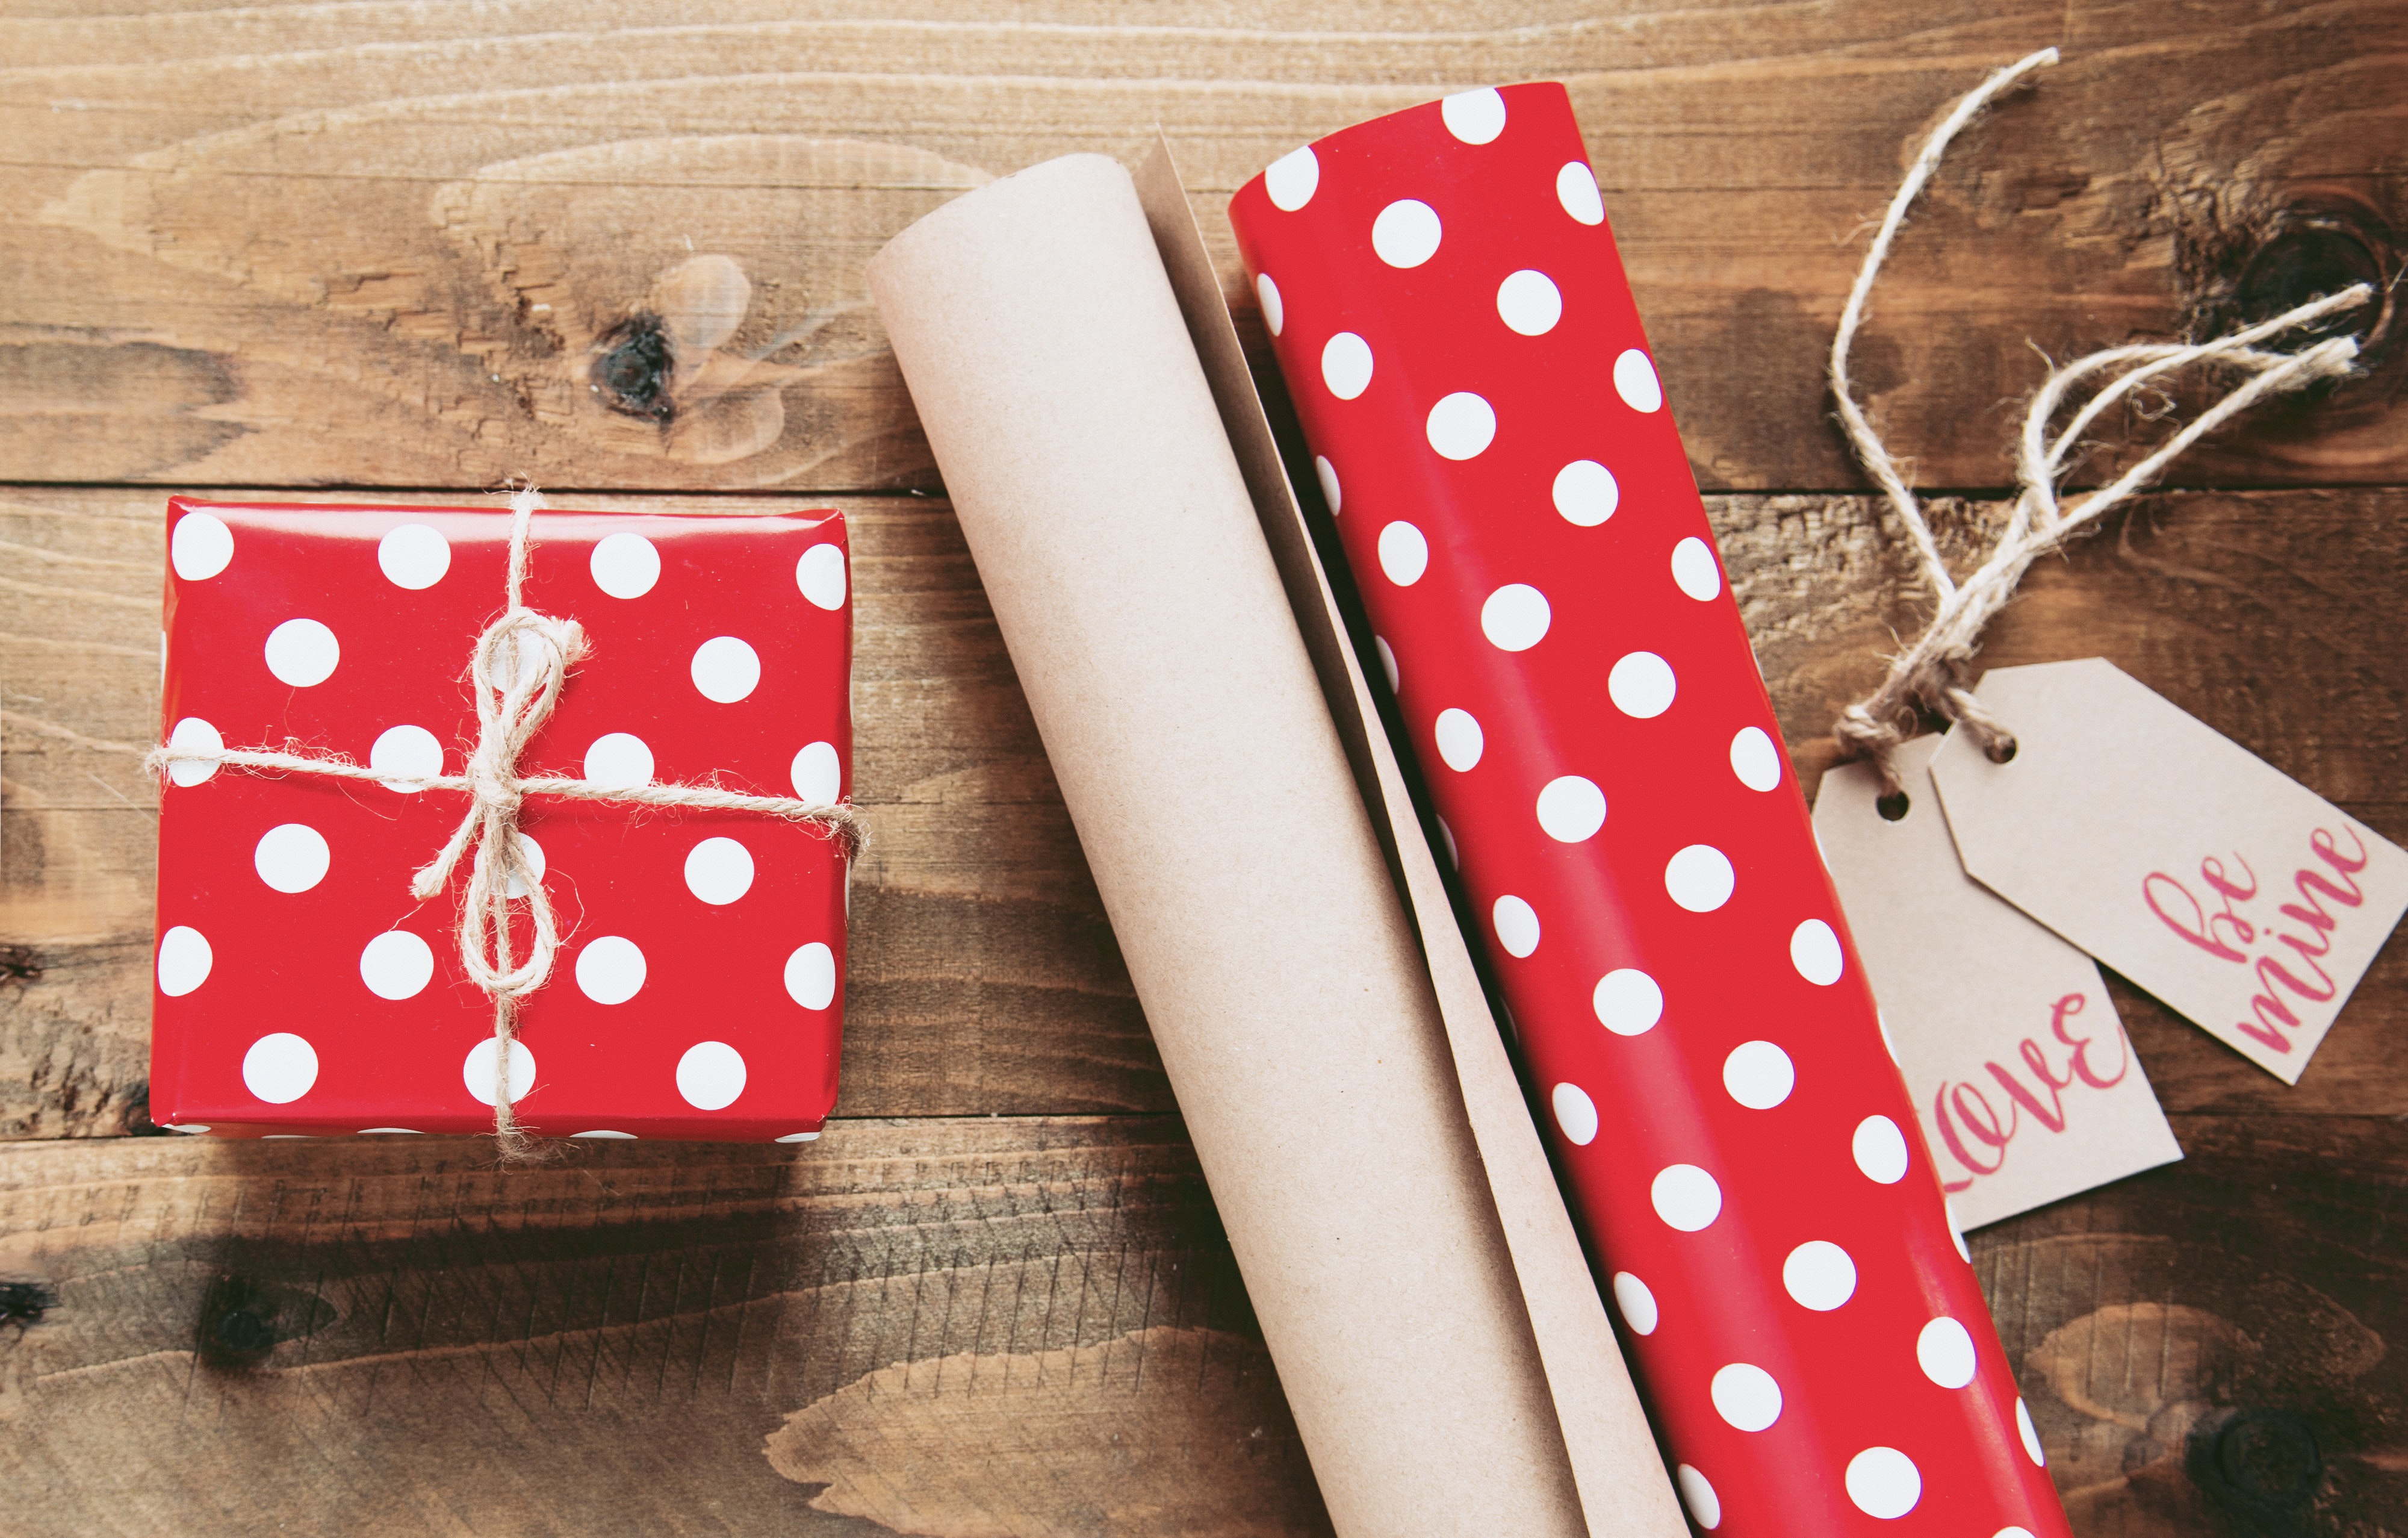 red and white polka-dot gift box beside gift wrappers